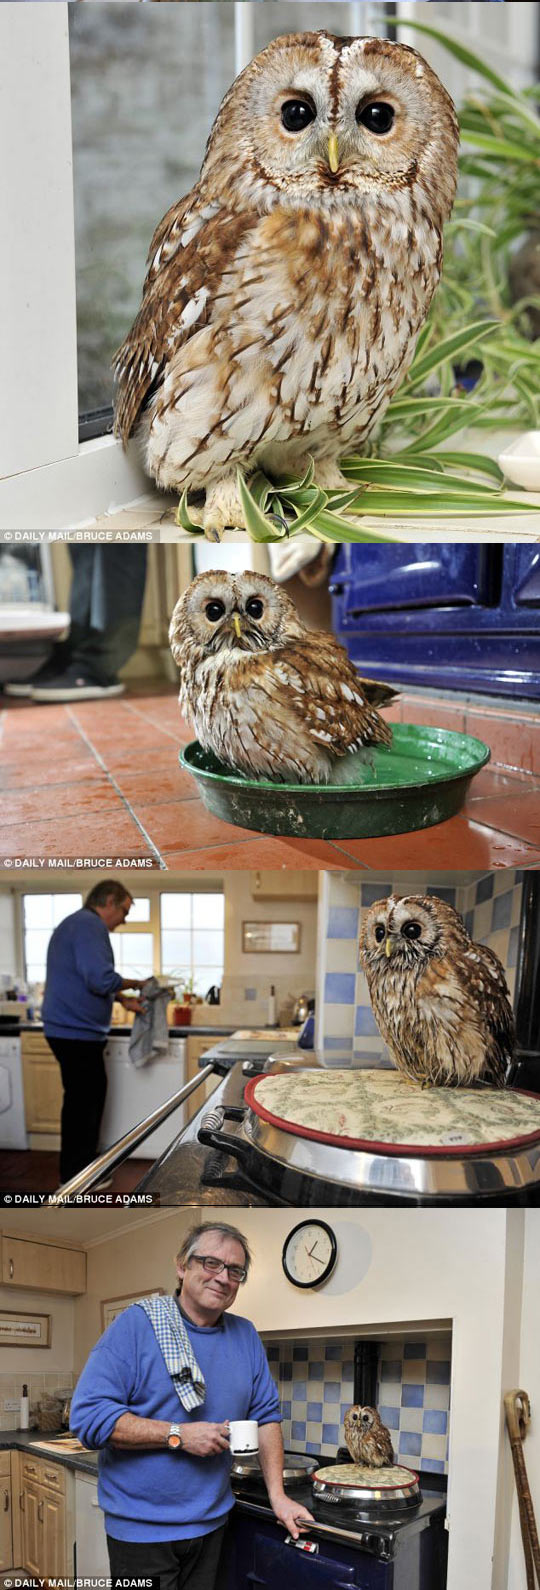 funny-picture-guy-owl-helping-chores-man-afraid-outdoors